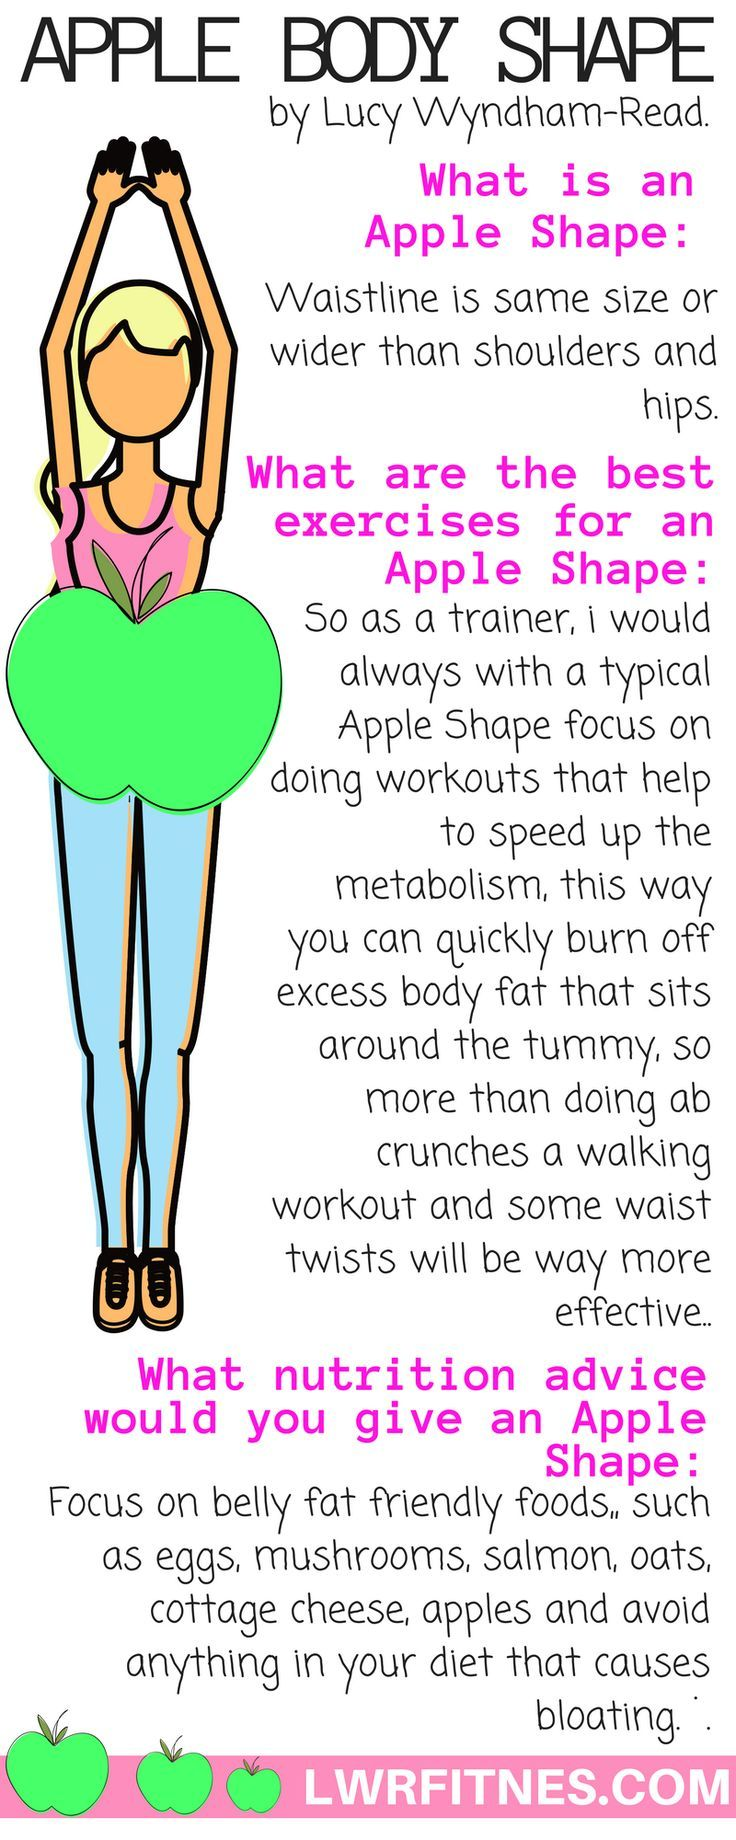 52 best Apple shape diet and workouts images on Pinterest ...